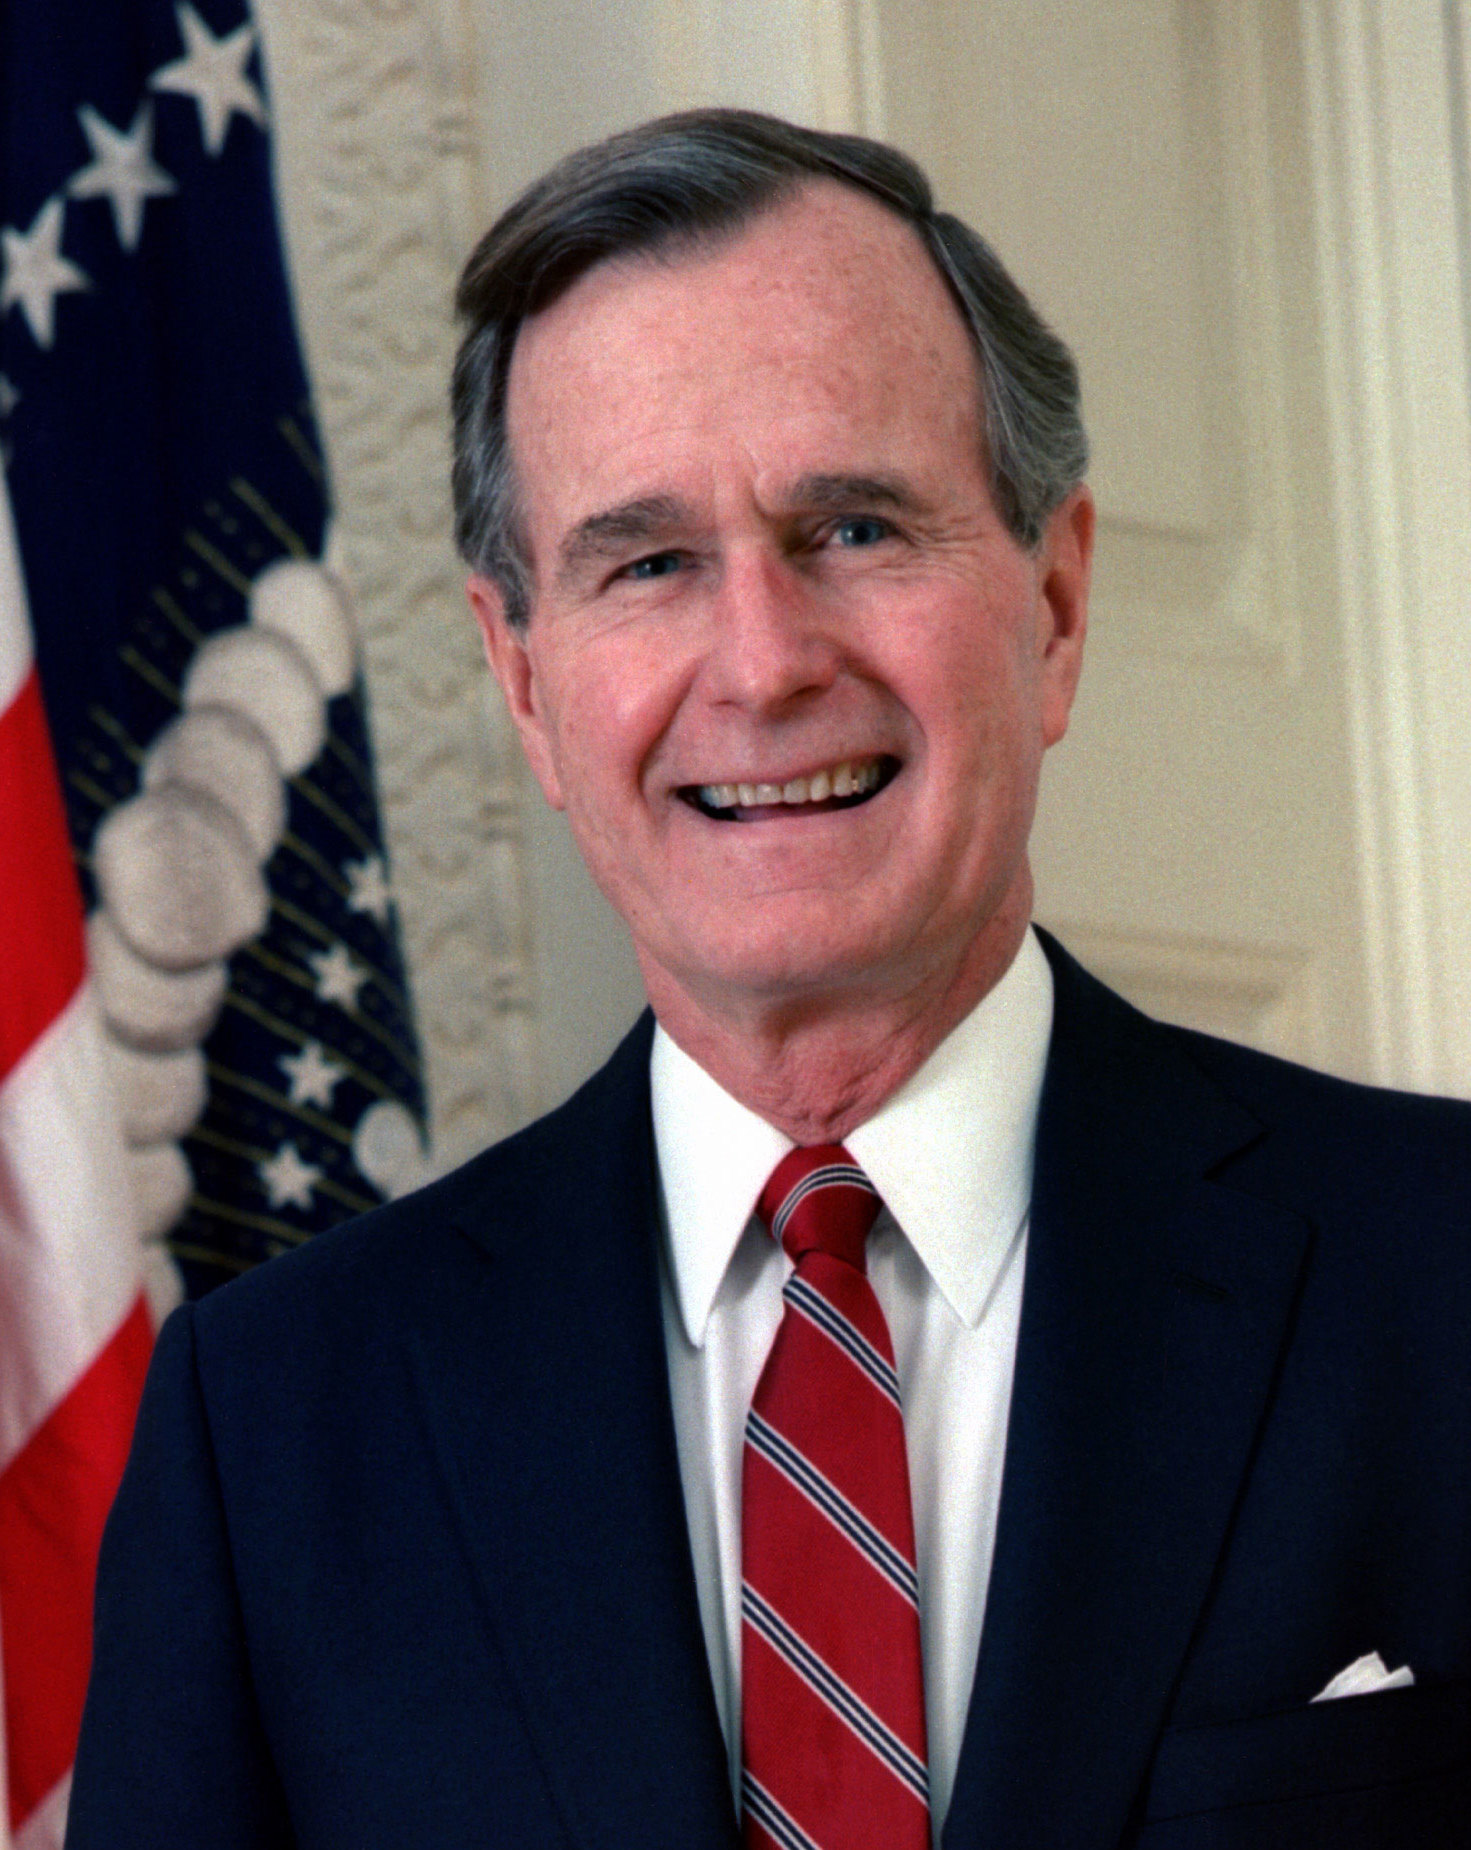 Flags Lowered in Honor of President George H.W. Bush